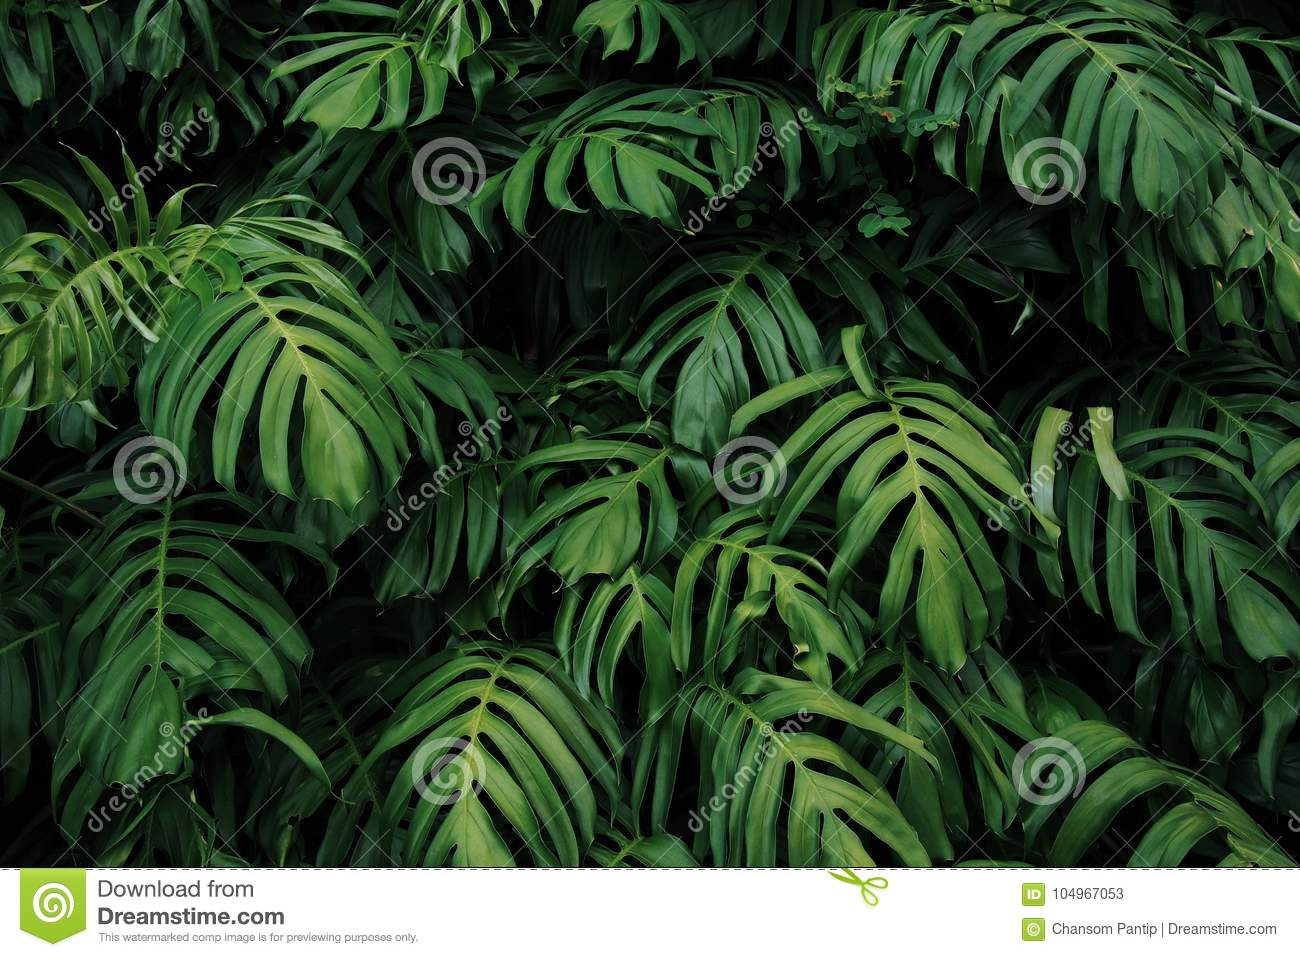 Green leaves of Monstera philodendron plant growing in wild, the tropical forest plant, evergreen vines on dark background.